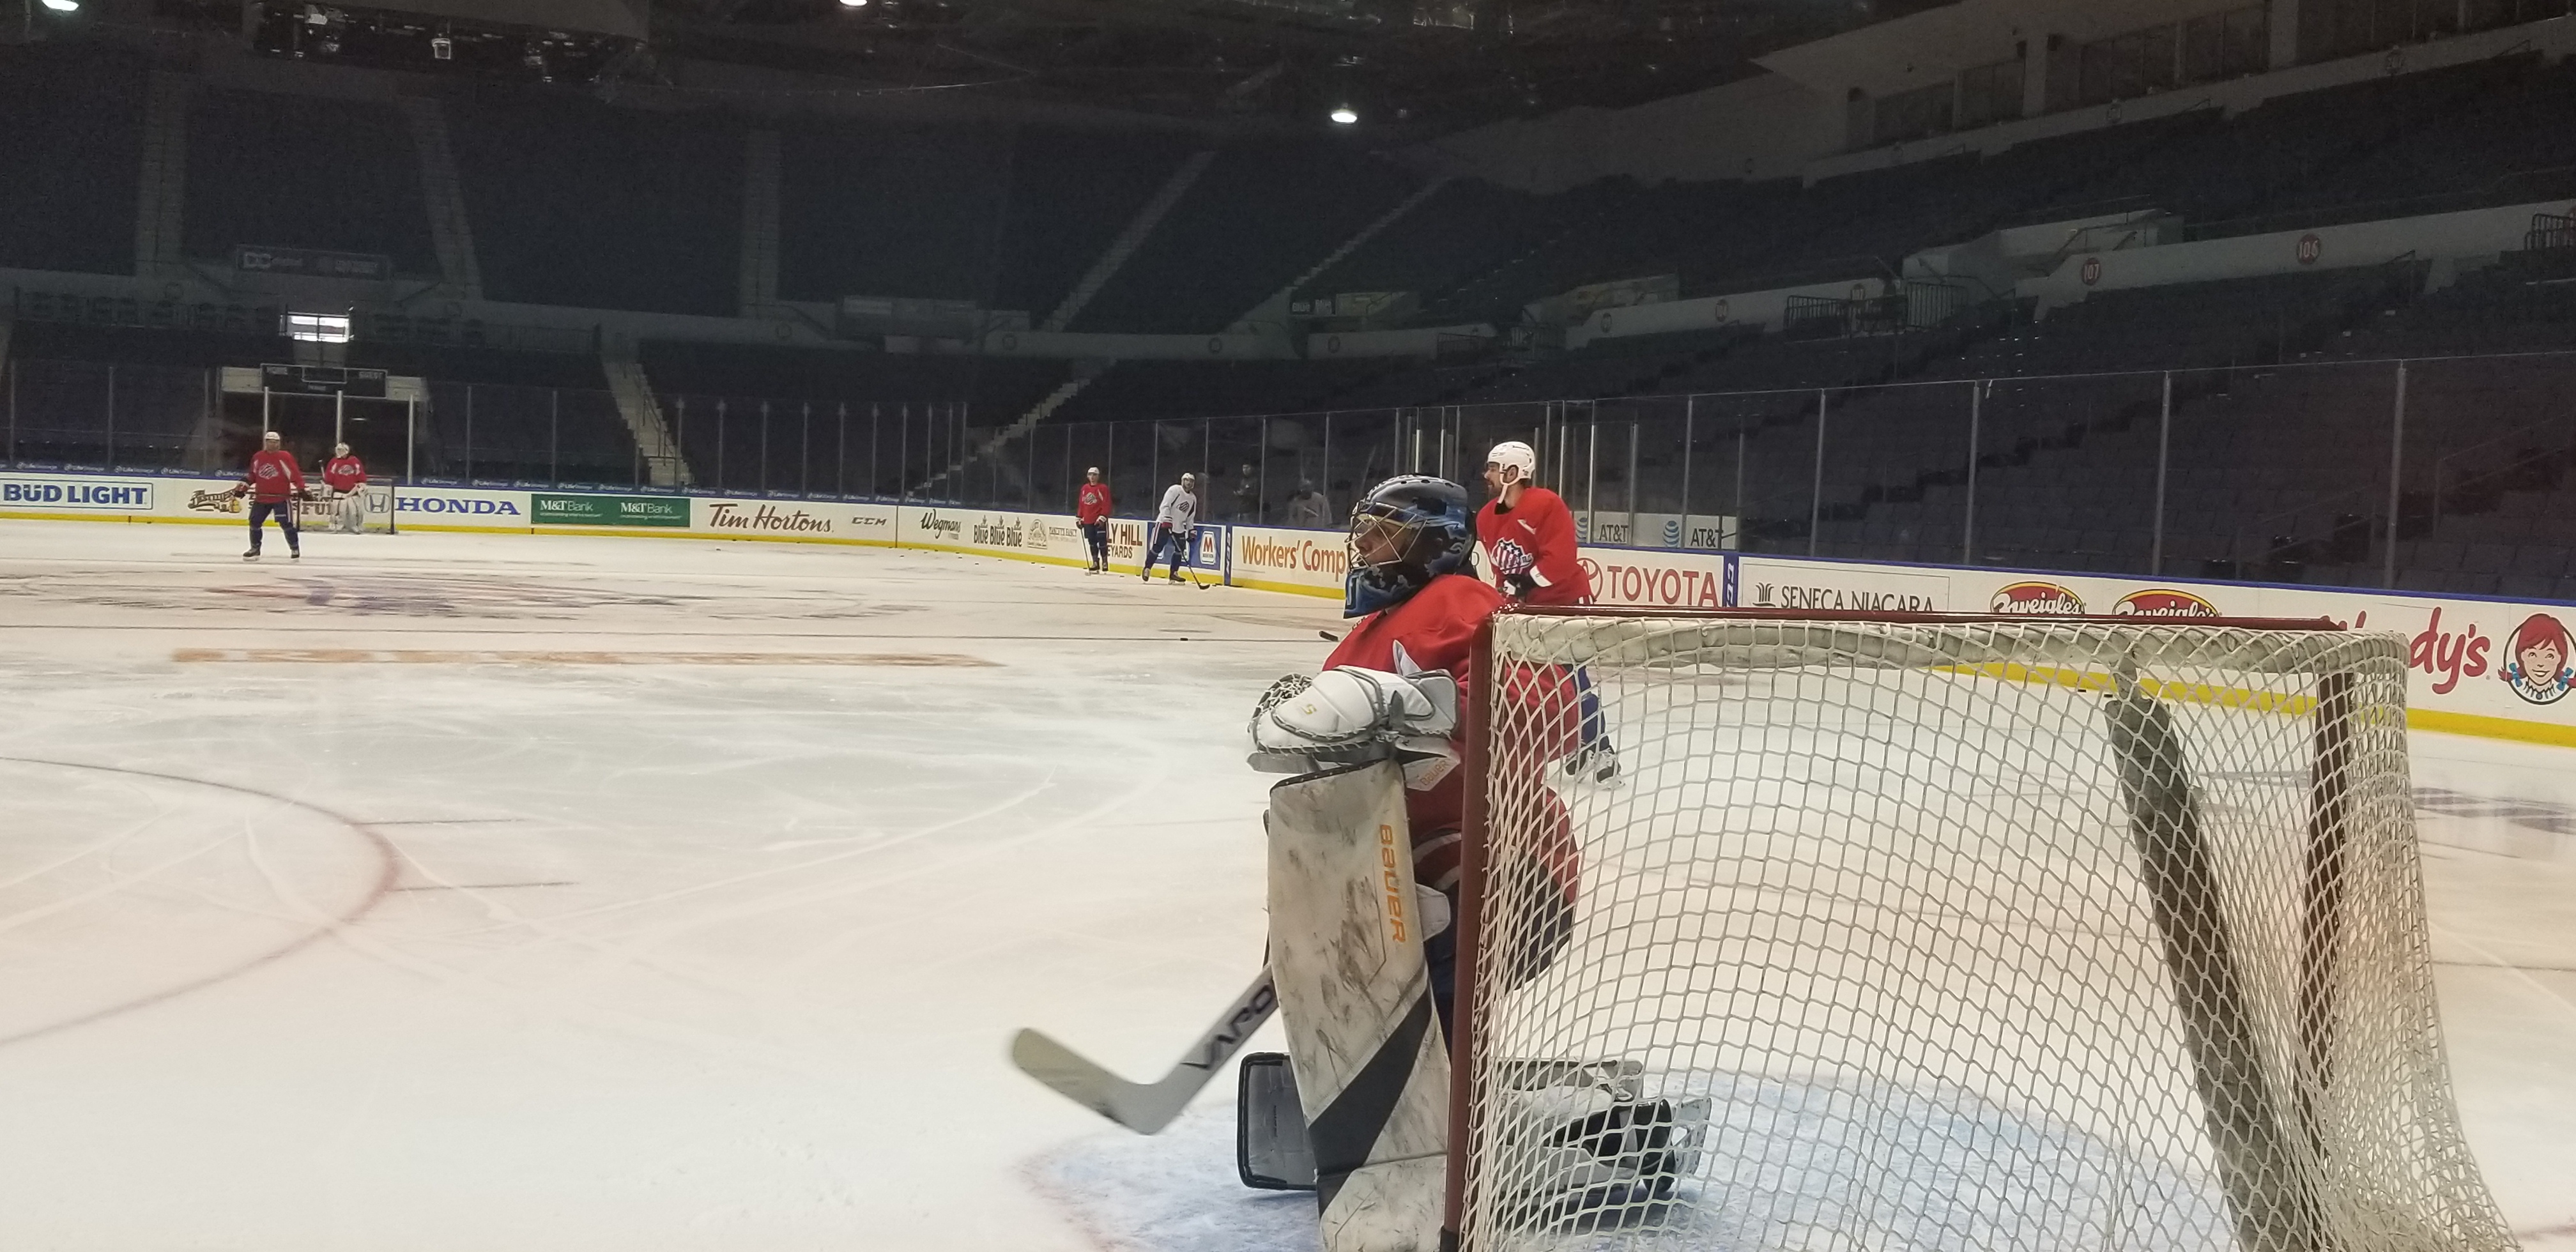 Team Meeting and Three Wins Later Amerks are Looking to Separate Themselves